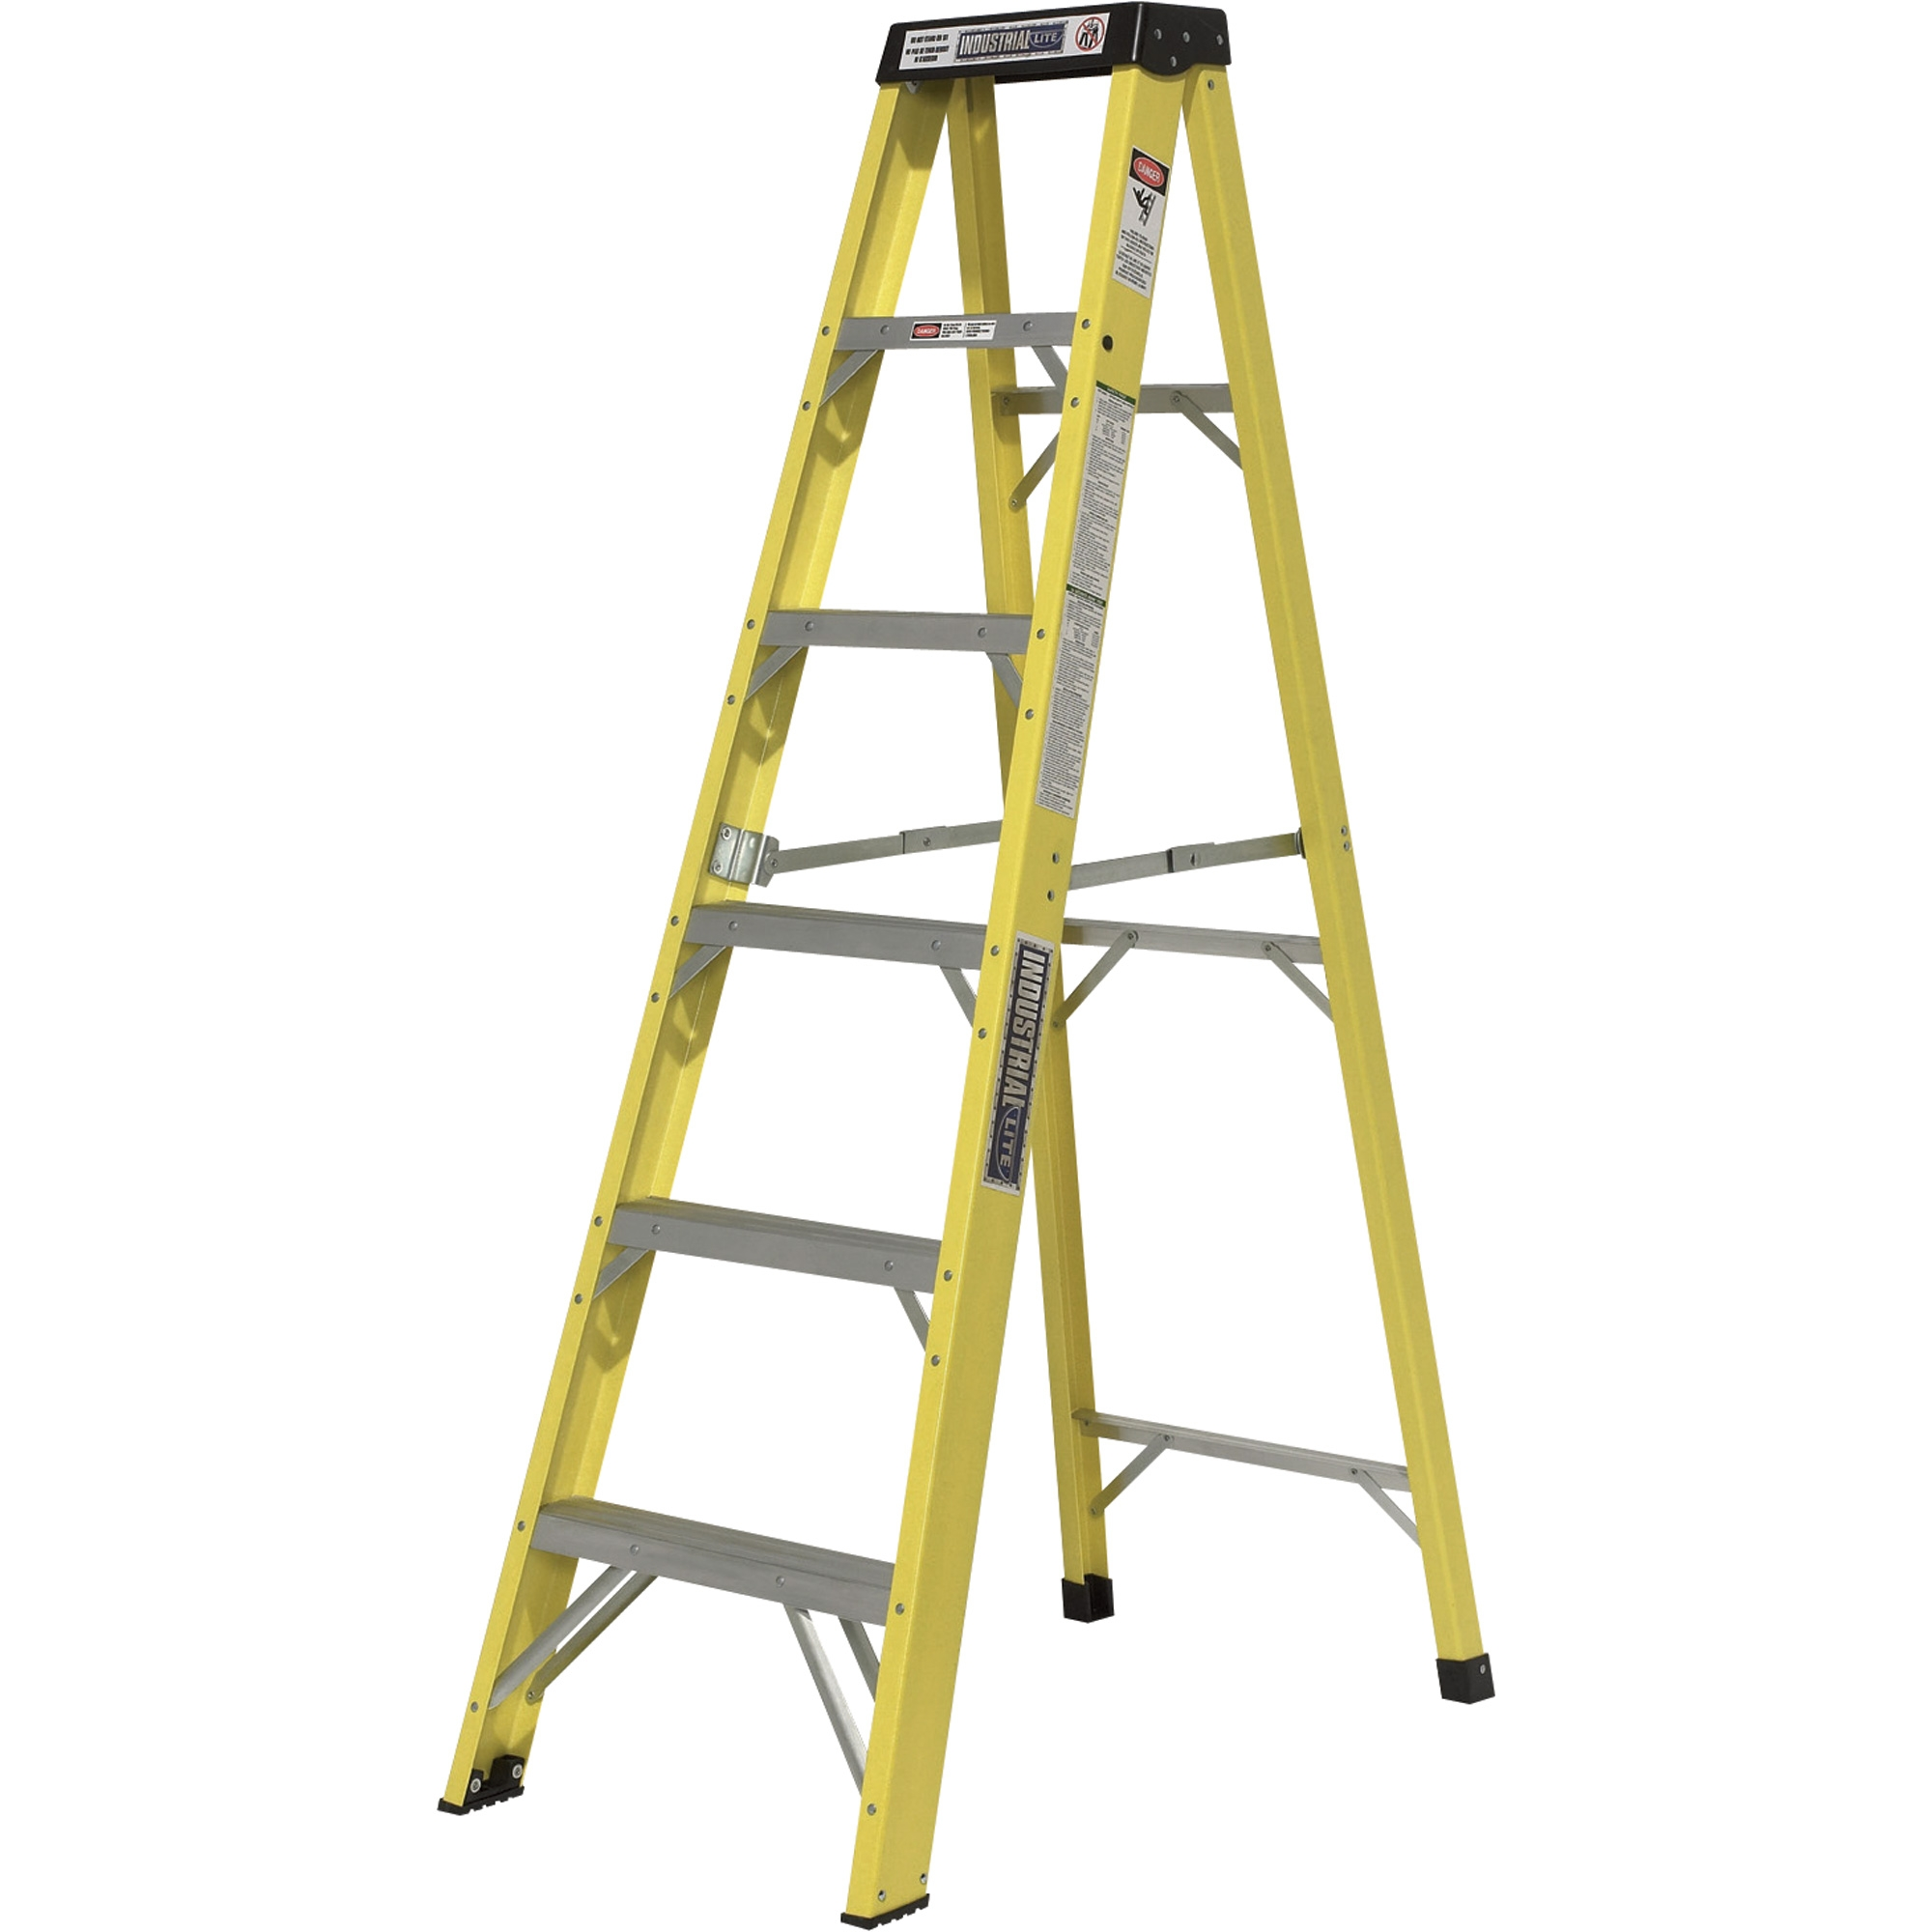 Ladder clipart fun. Best of gallery digital